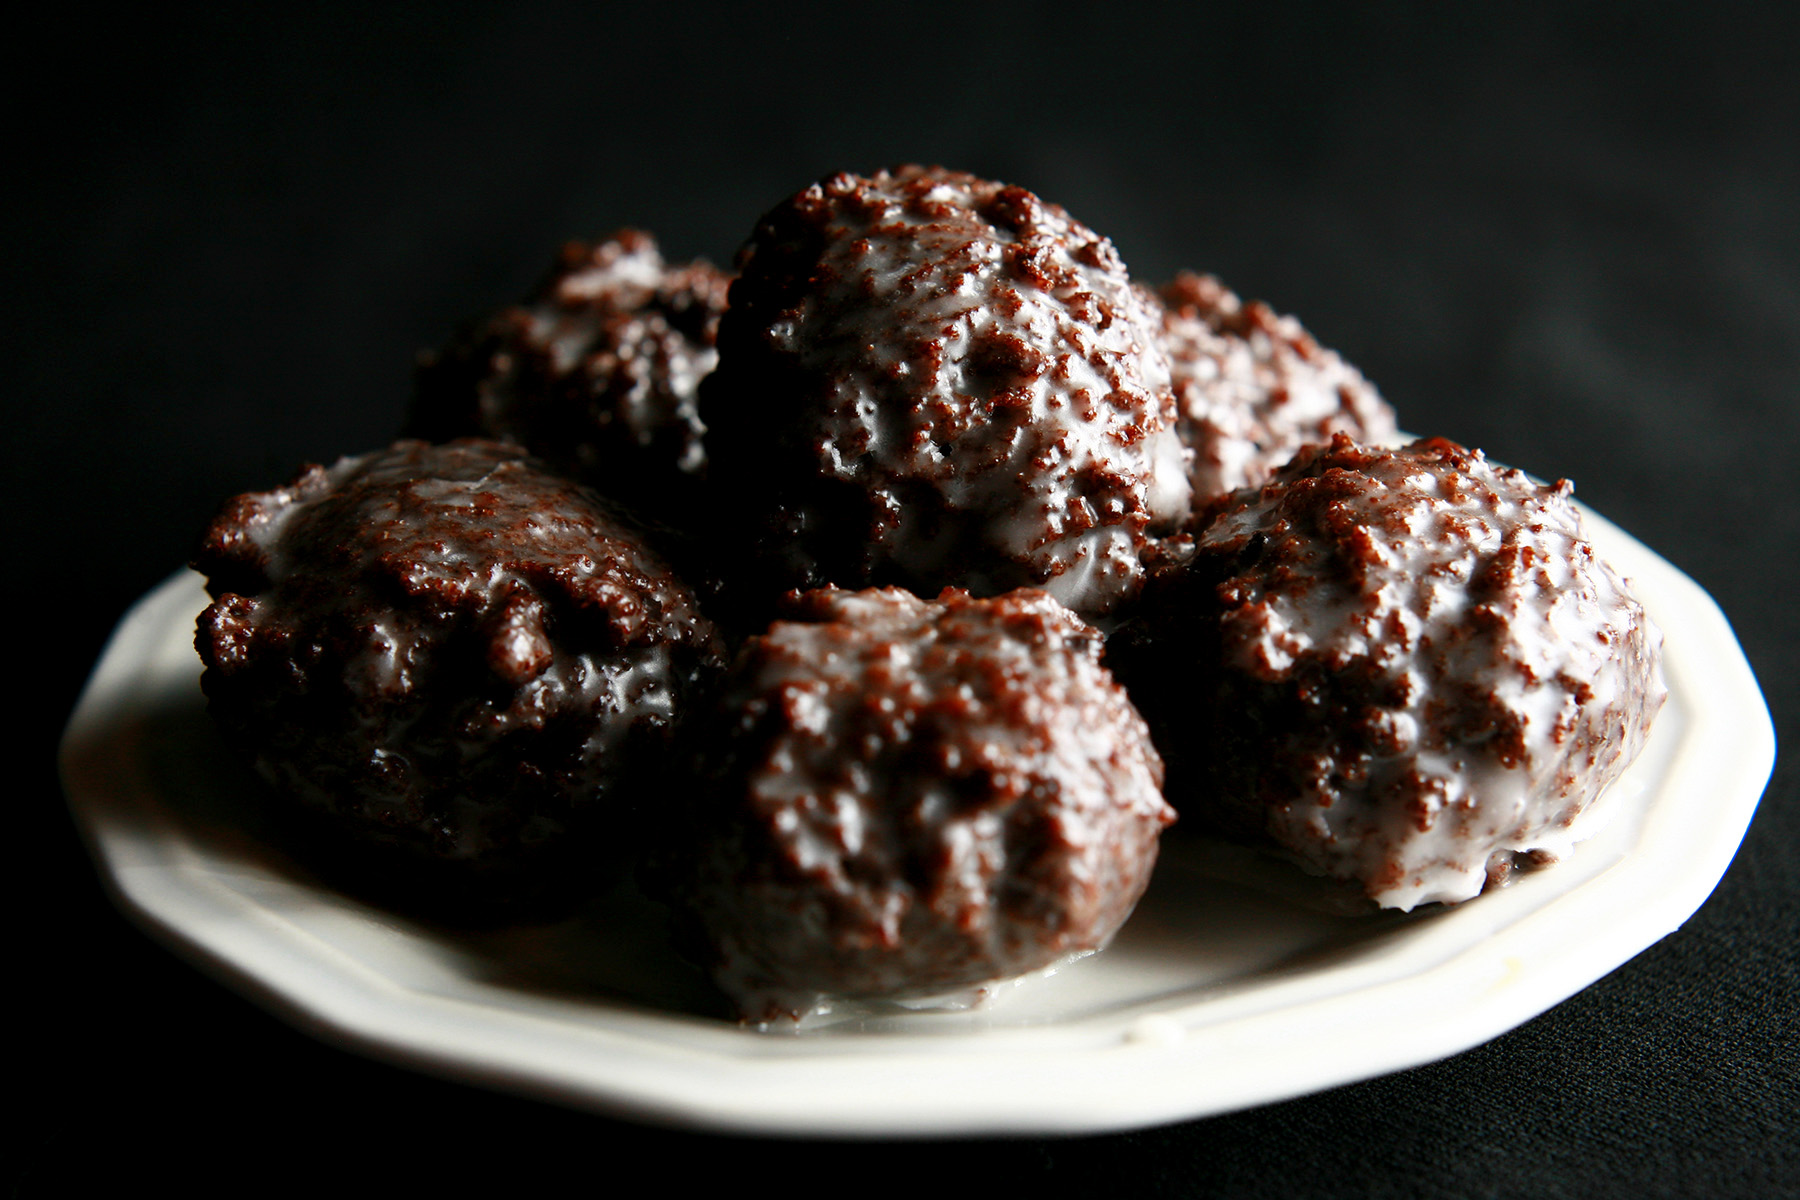 Several gluten-free chocolate doughnut holes on a small white plate.